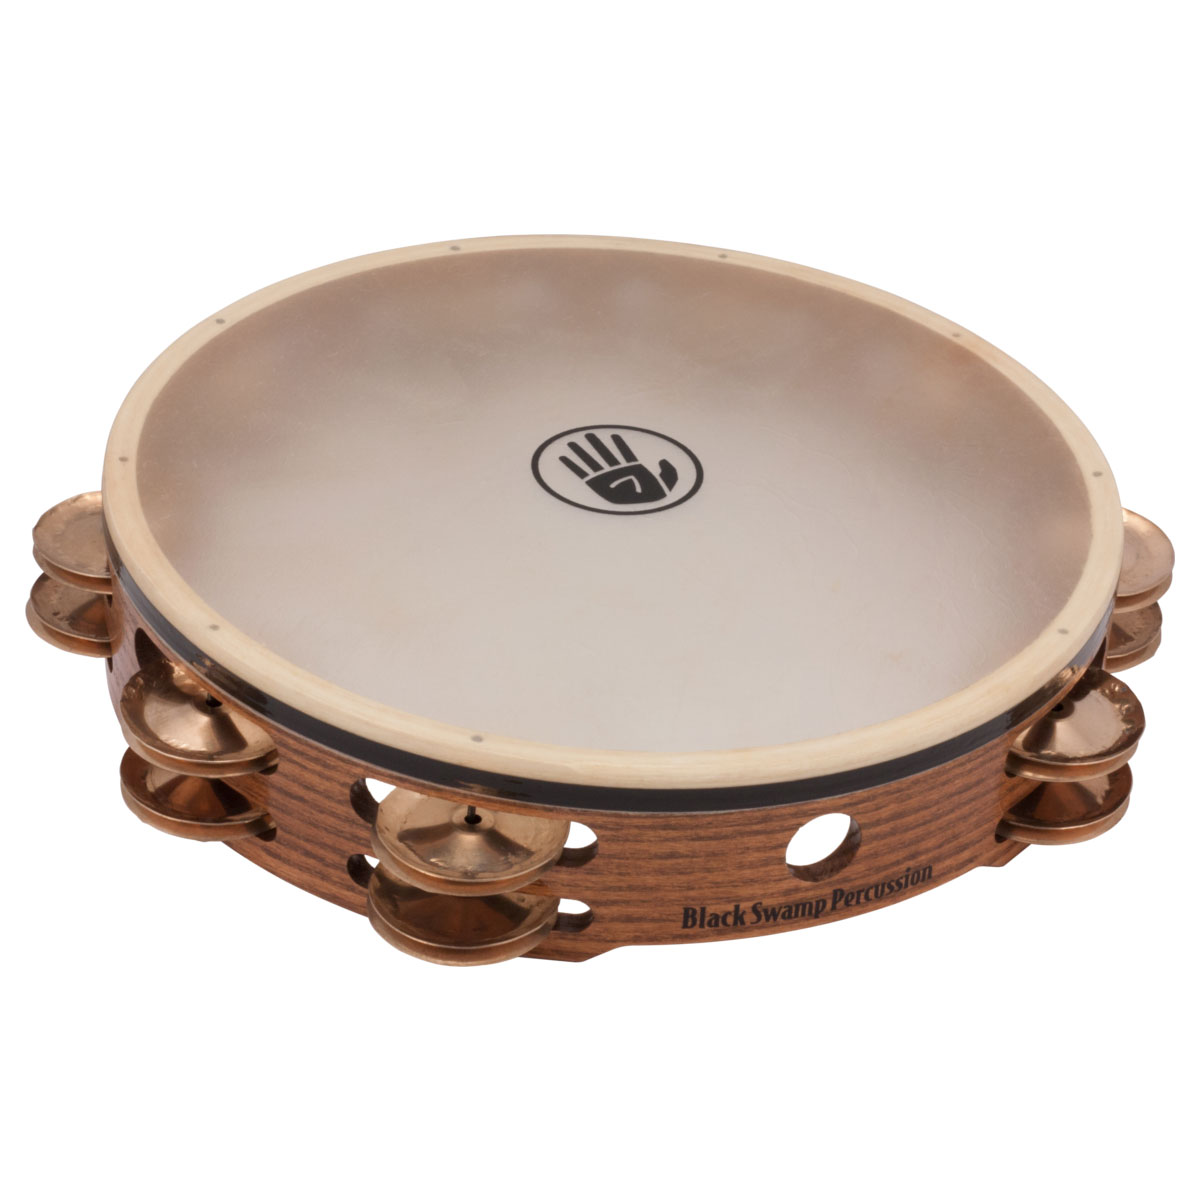 "Black Swamp 10"" SoundArt Double-Row Beryllium Copper Tambourine (Natural Head)"